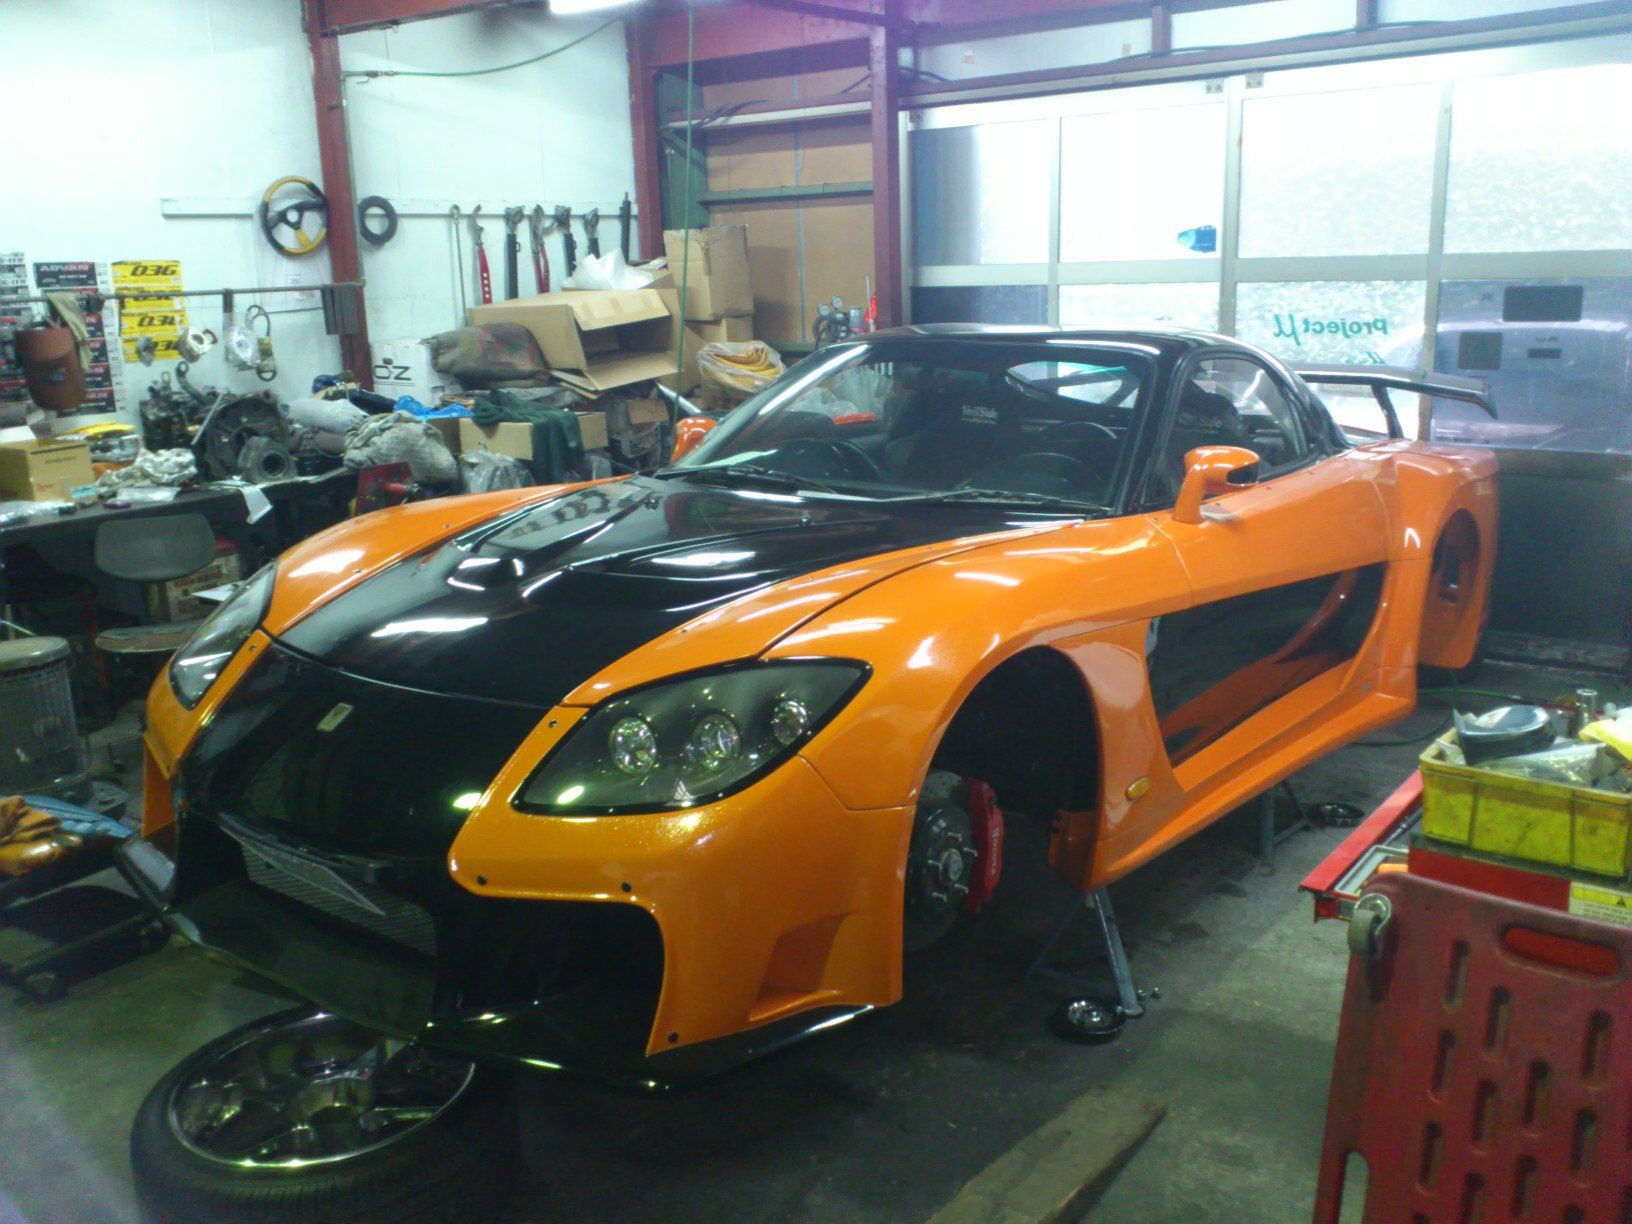 fd3s rx7 made by veilside this car used at movie fast furious 3 tokyo drift my future. Black Bedroom Furniture Sets. Home Design Ideas